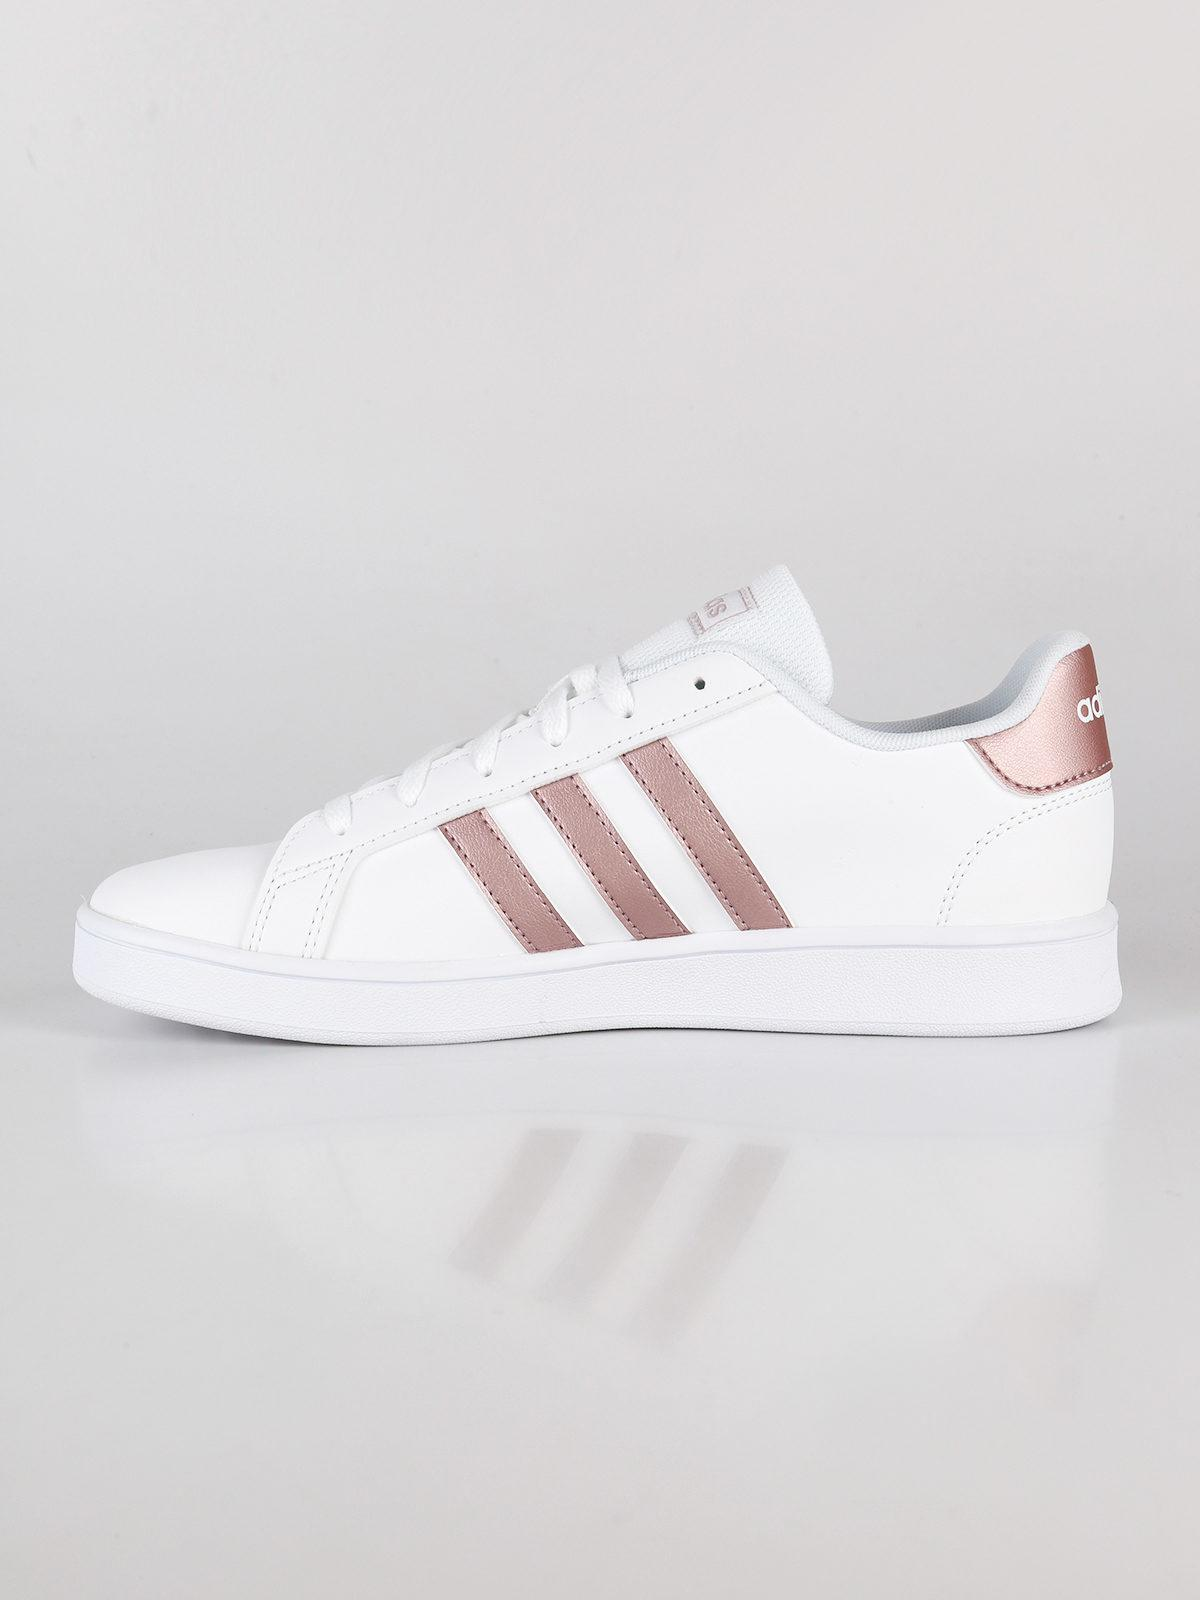 Grand court k sneakers basse biancorosa adidas | MecShopping